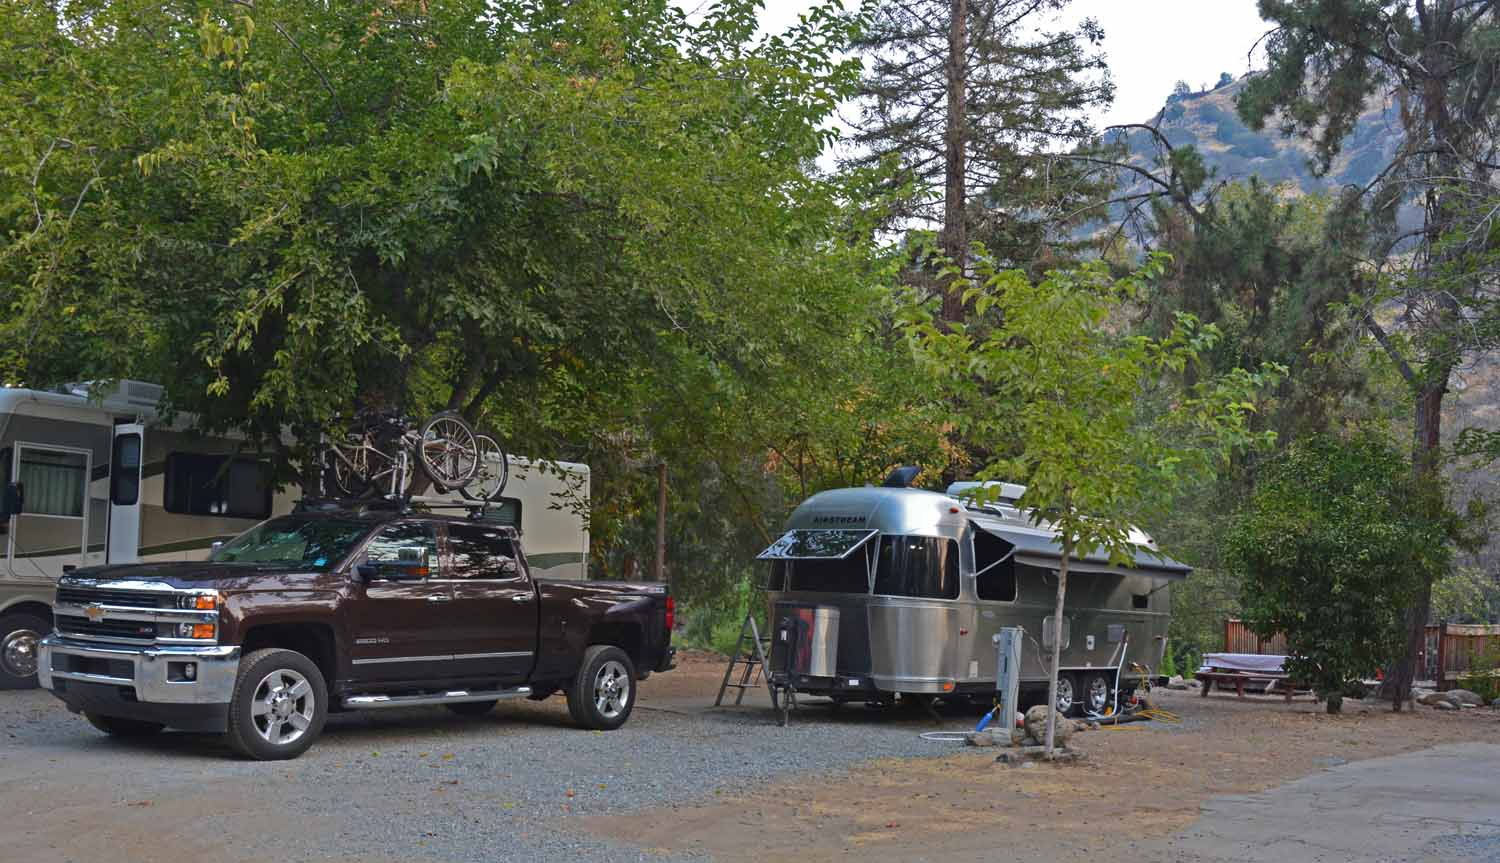 At Sequoia/King we based camped at the Sequoia RV Ranch park.  It was a great find and enjoyed our deck overlooking the river.